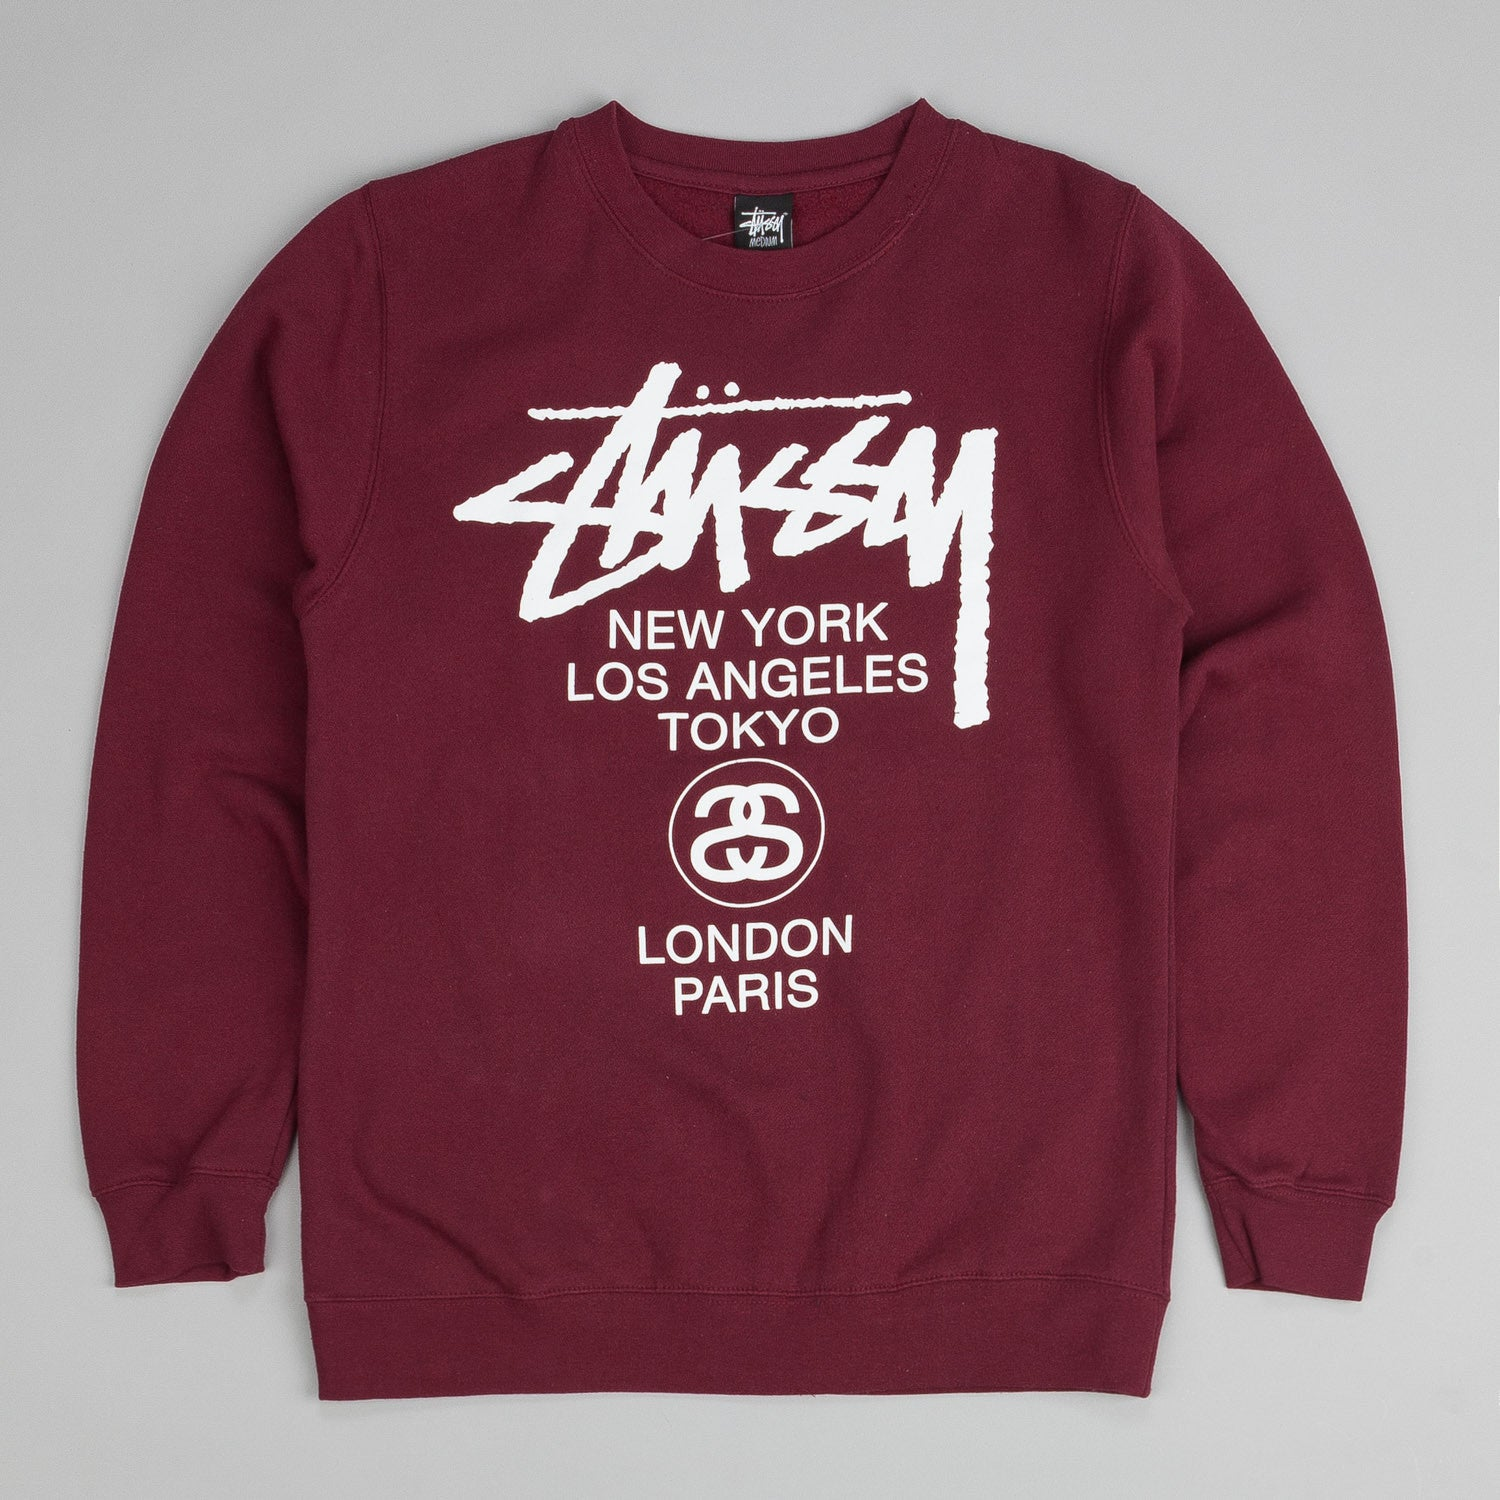 Stussy World Tour Crew Neck Sweatshirt Wine